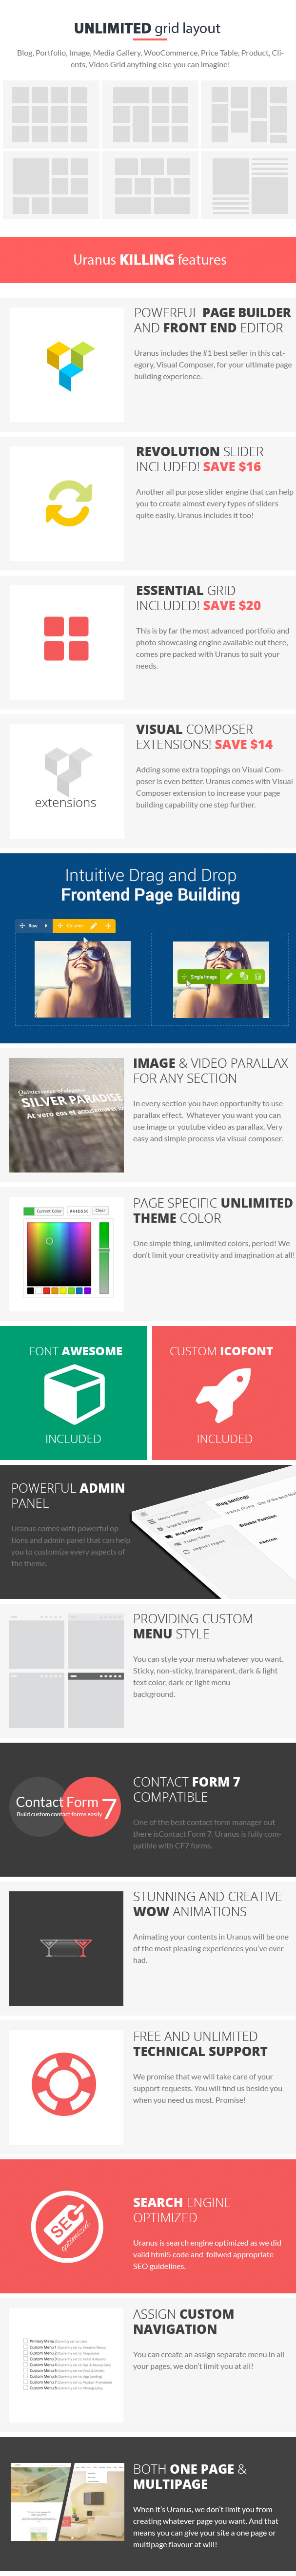 Uranus - Responsive Multi-Purpose WordPress Theme